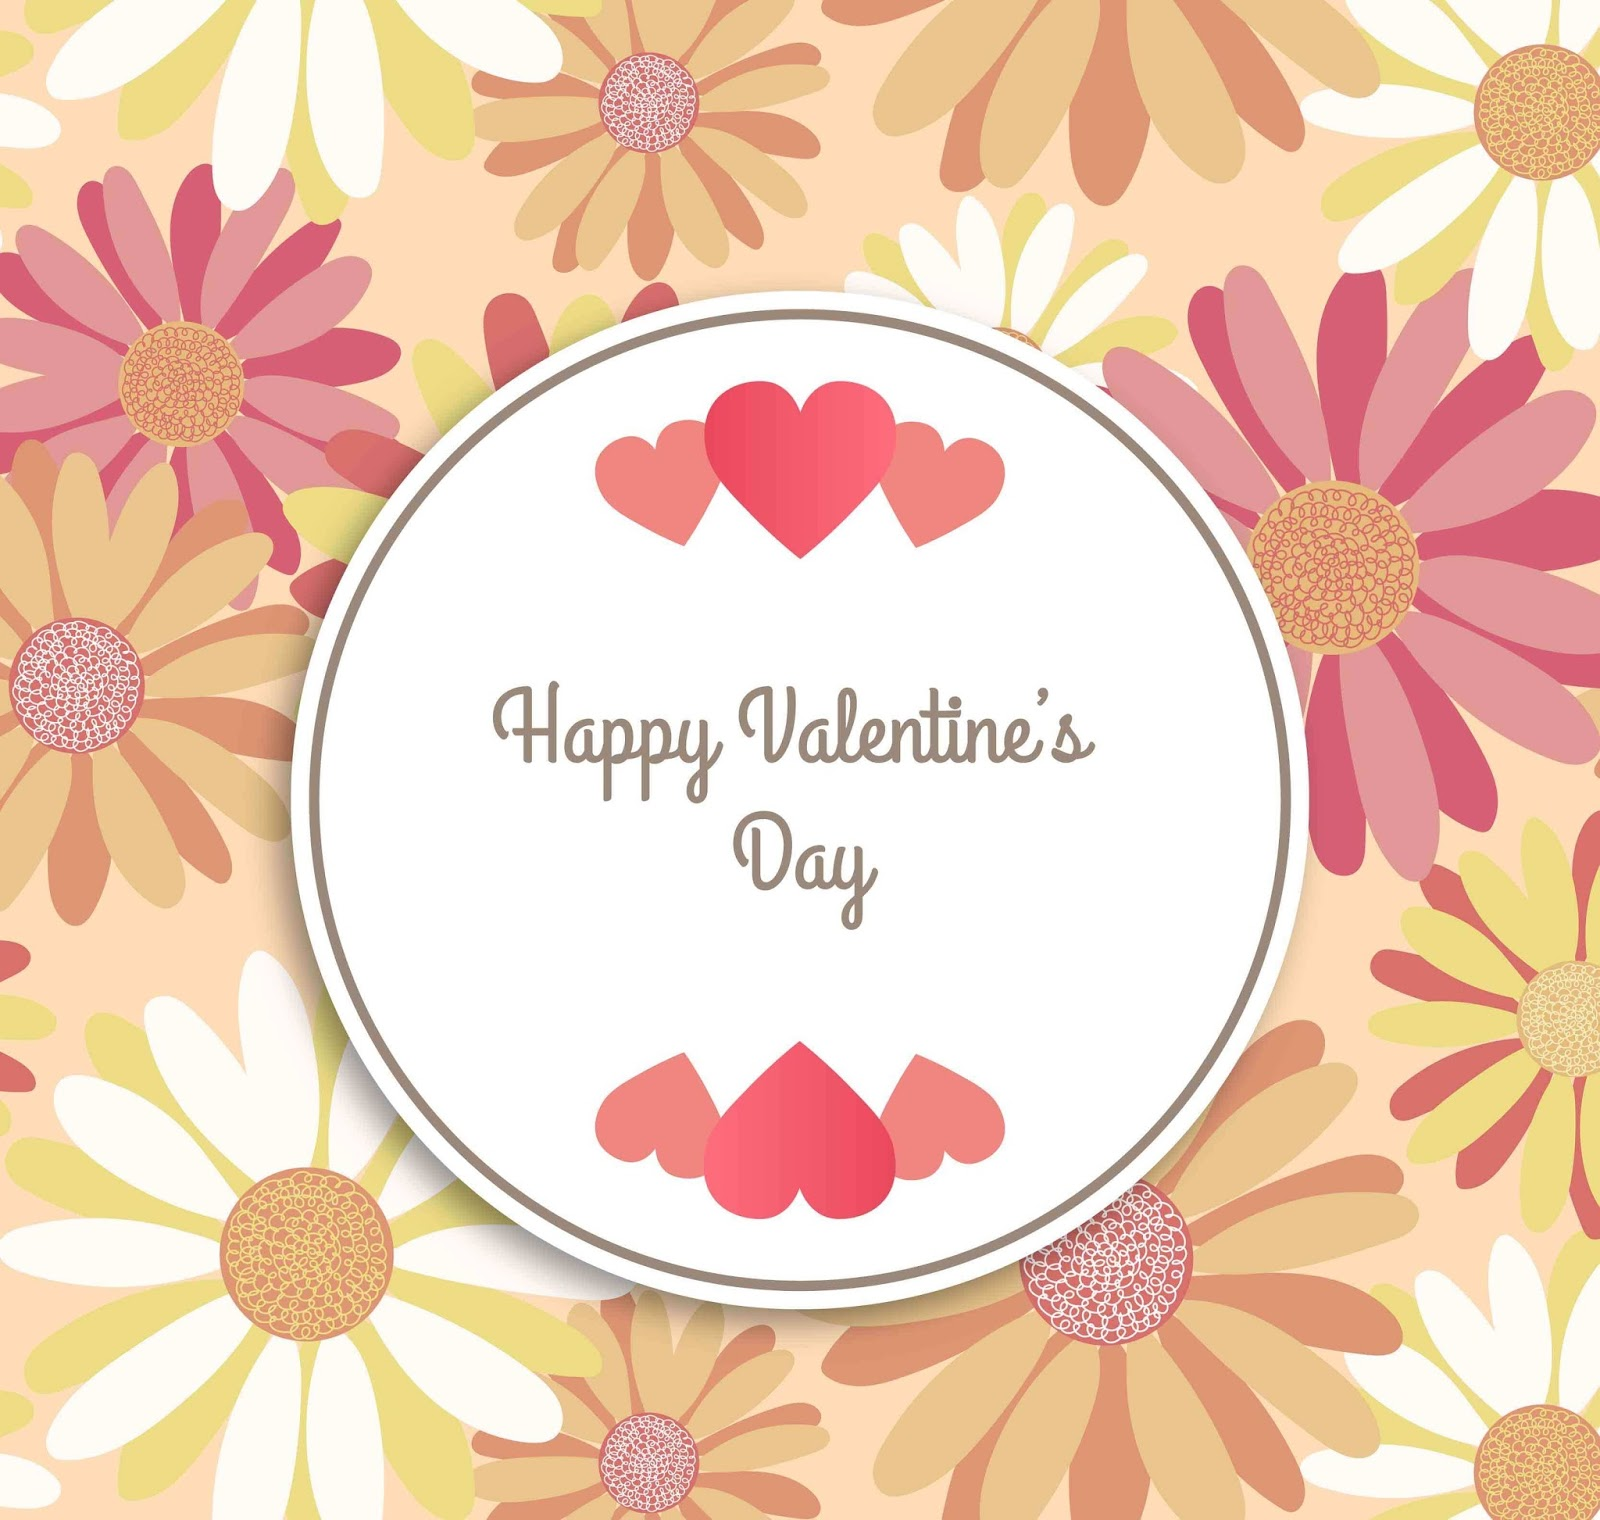 valentines day clipart images download